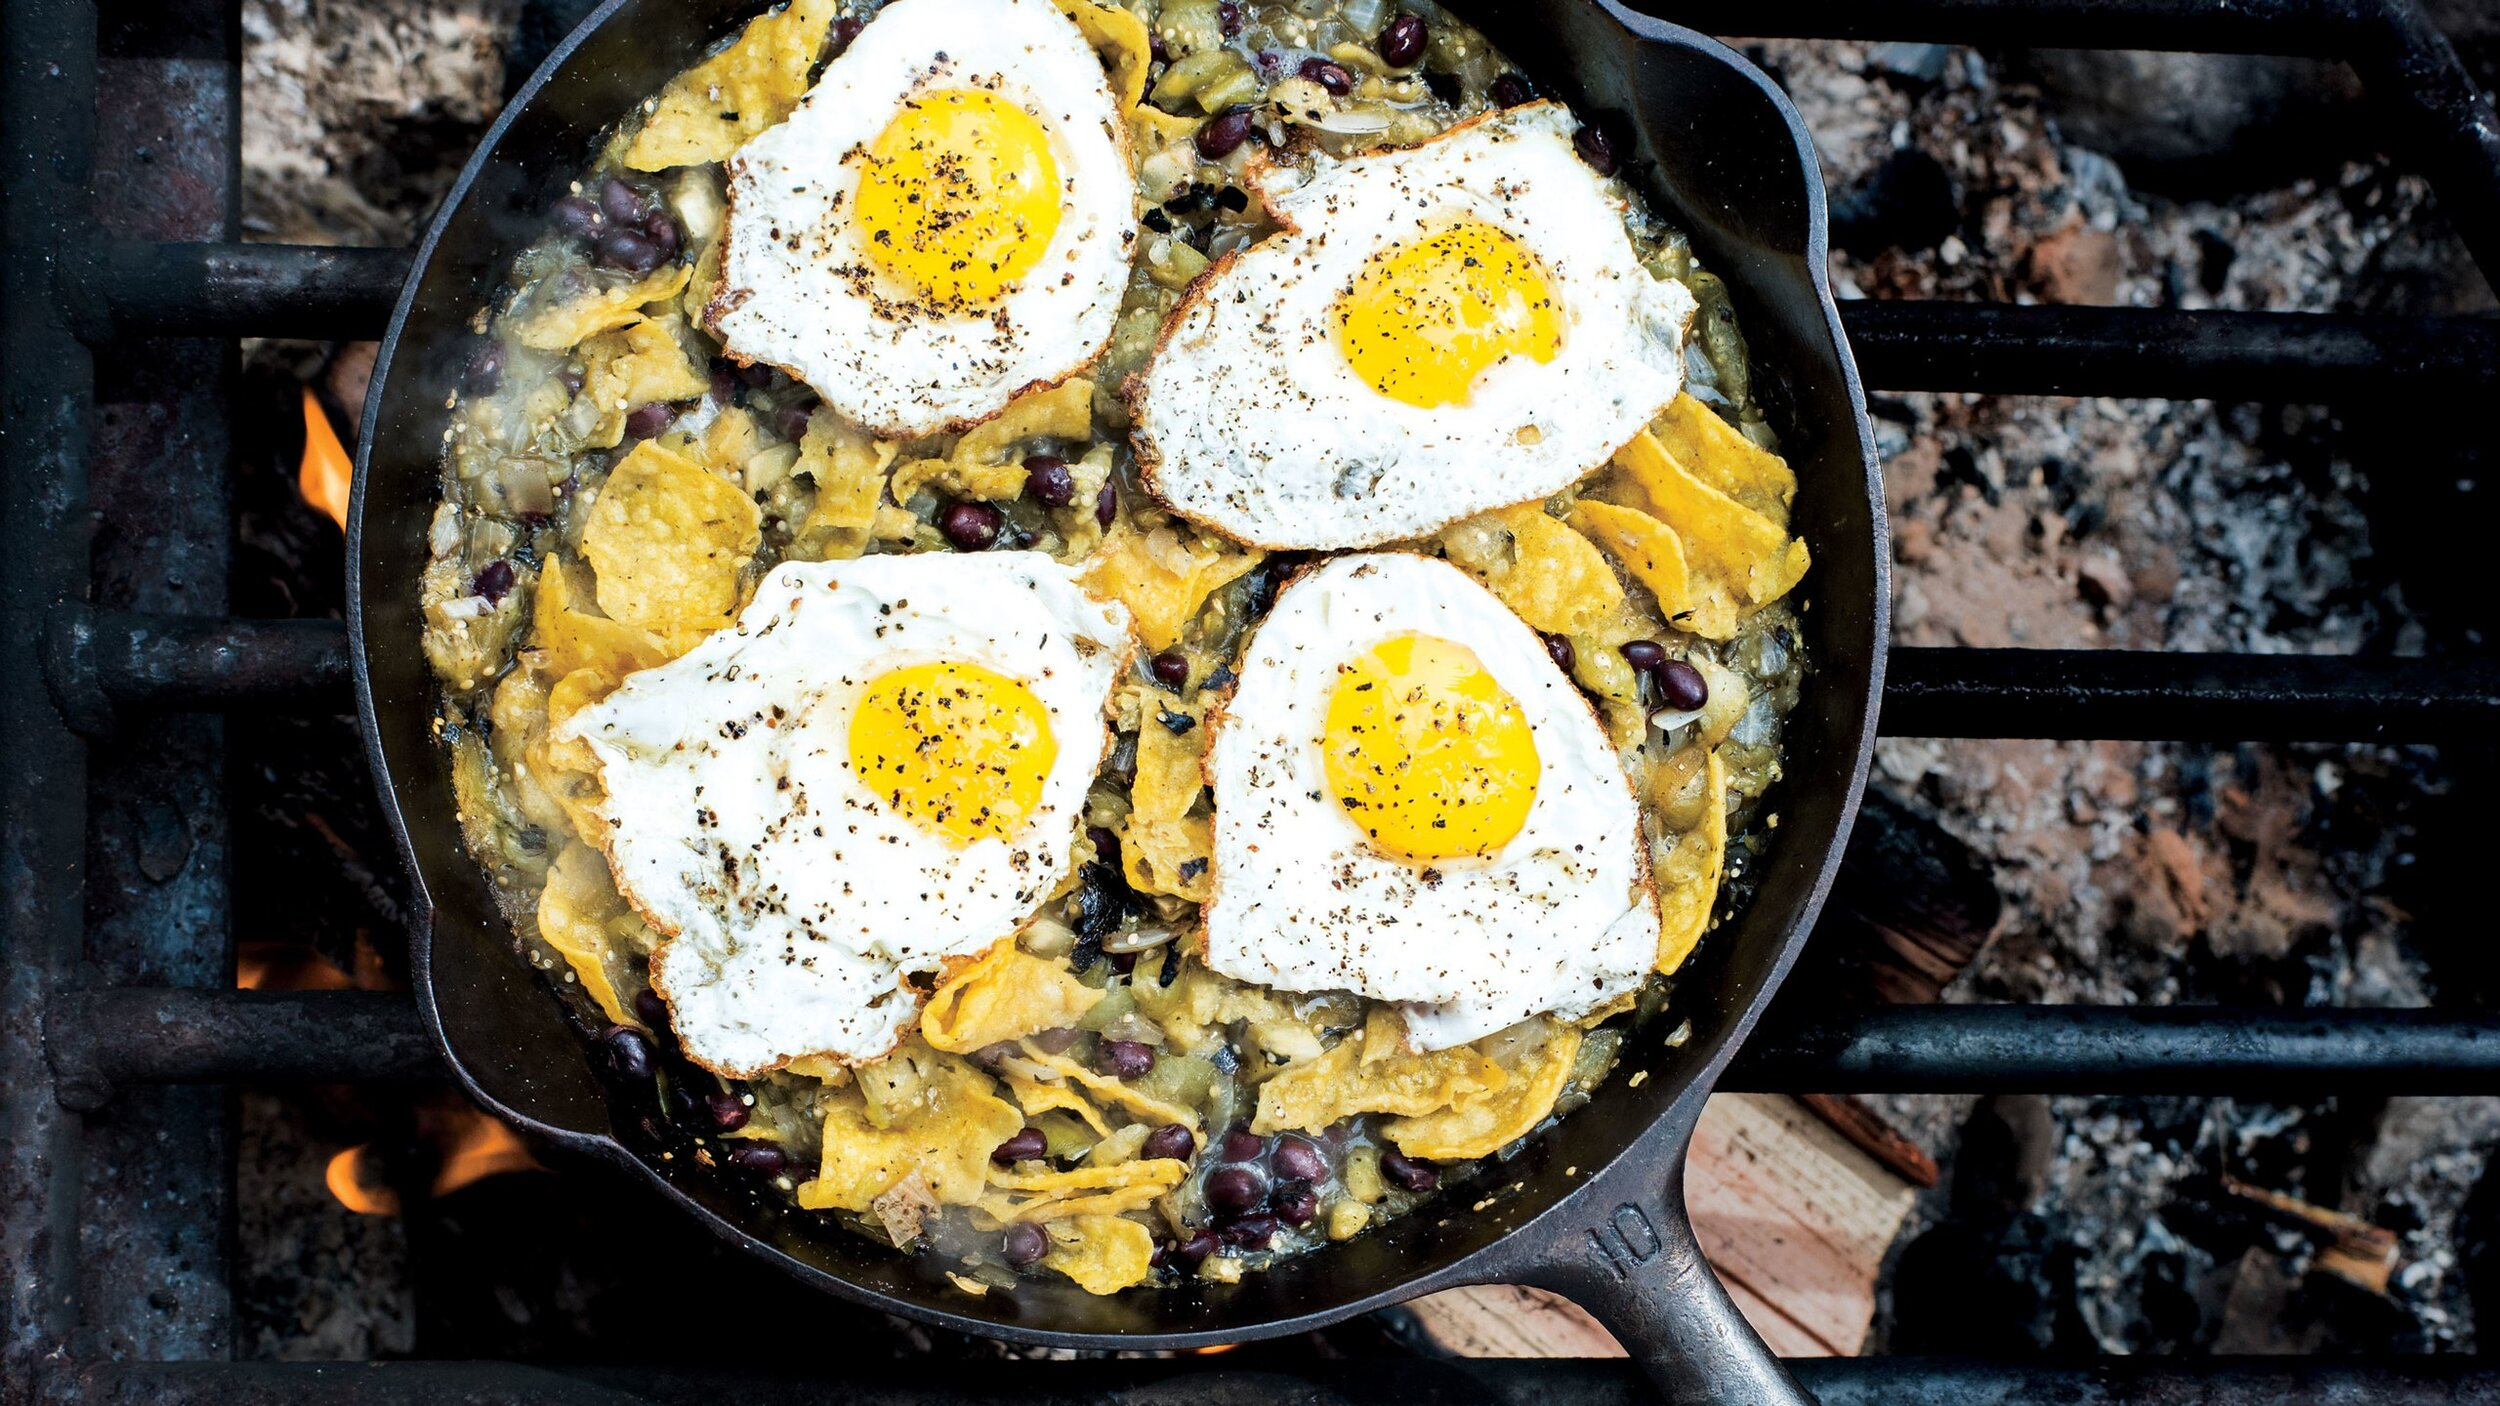 chilaquiles-with-blistered-tomatillo-salsa-and-eggs.jpg